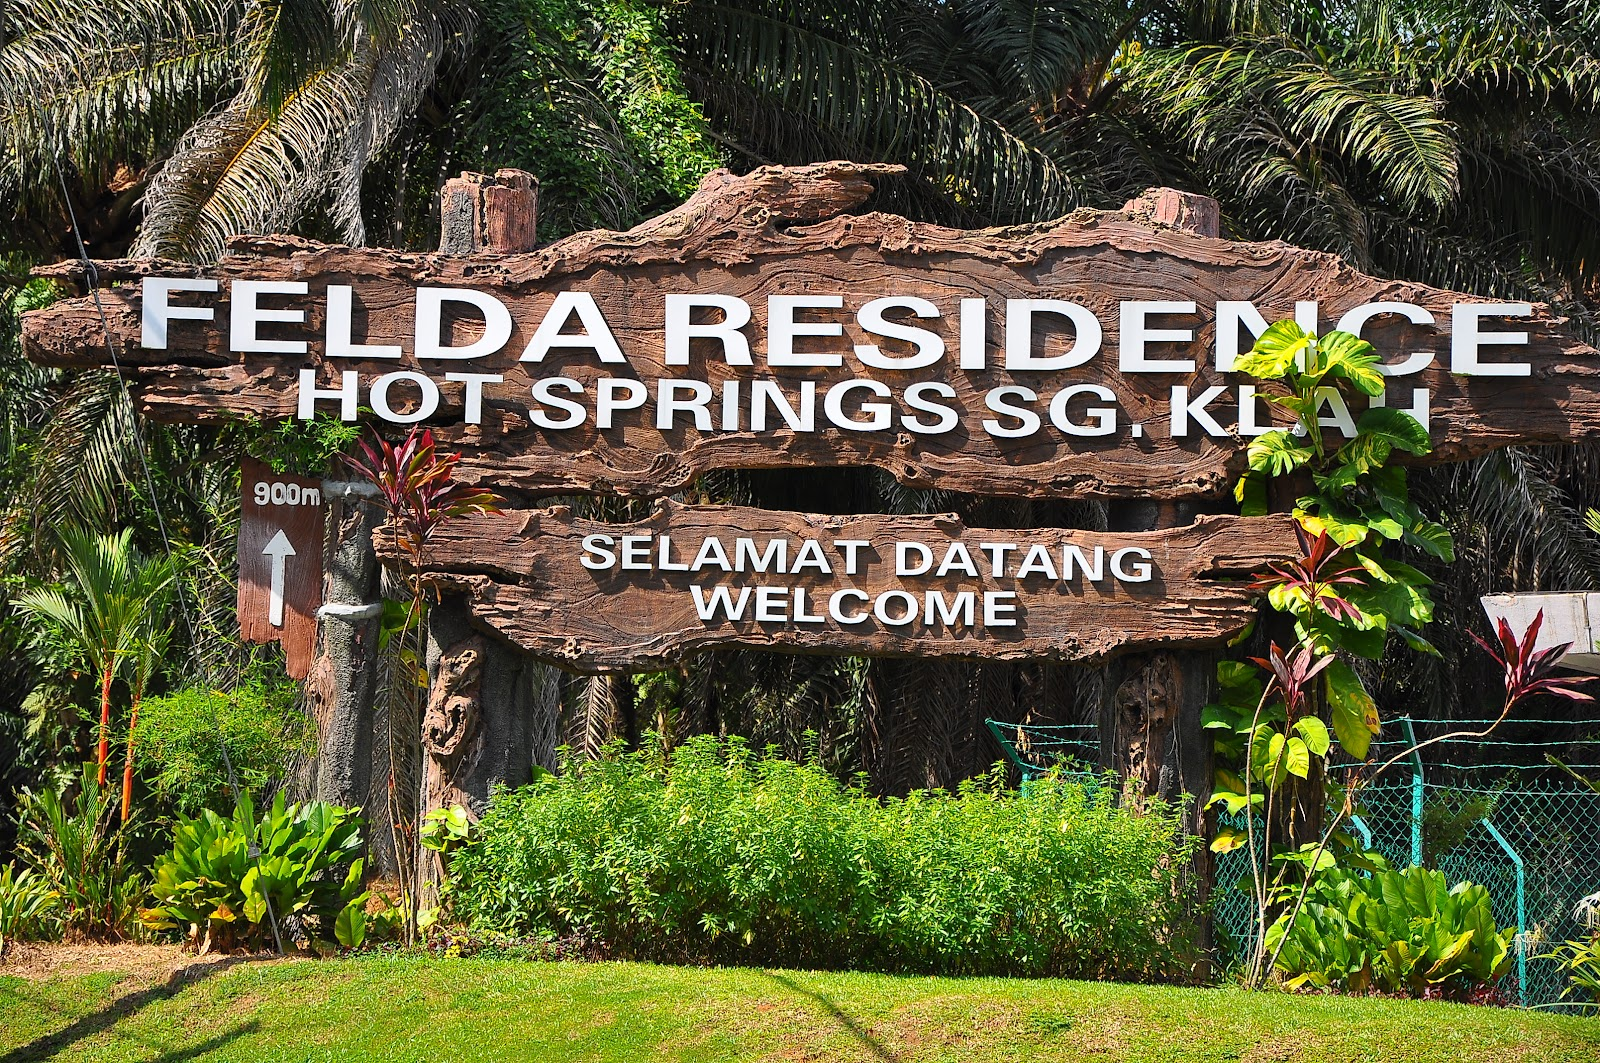 Sungai klah hot springs - This Is The 2nd Time I Experience Hot Springs Natural Water The First Was At Poring Hot Spring Kinabalu Park Sabah But We Just Soak Our Feet As Time Not